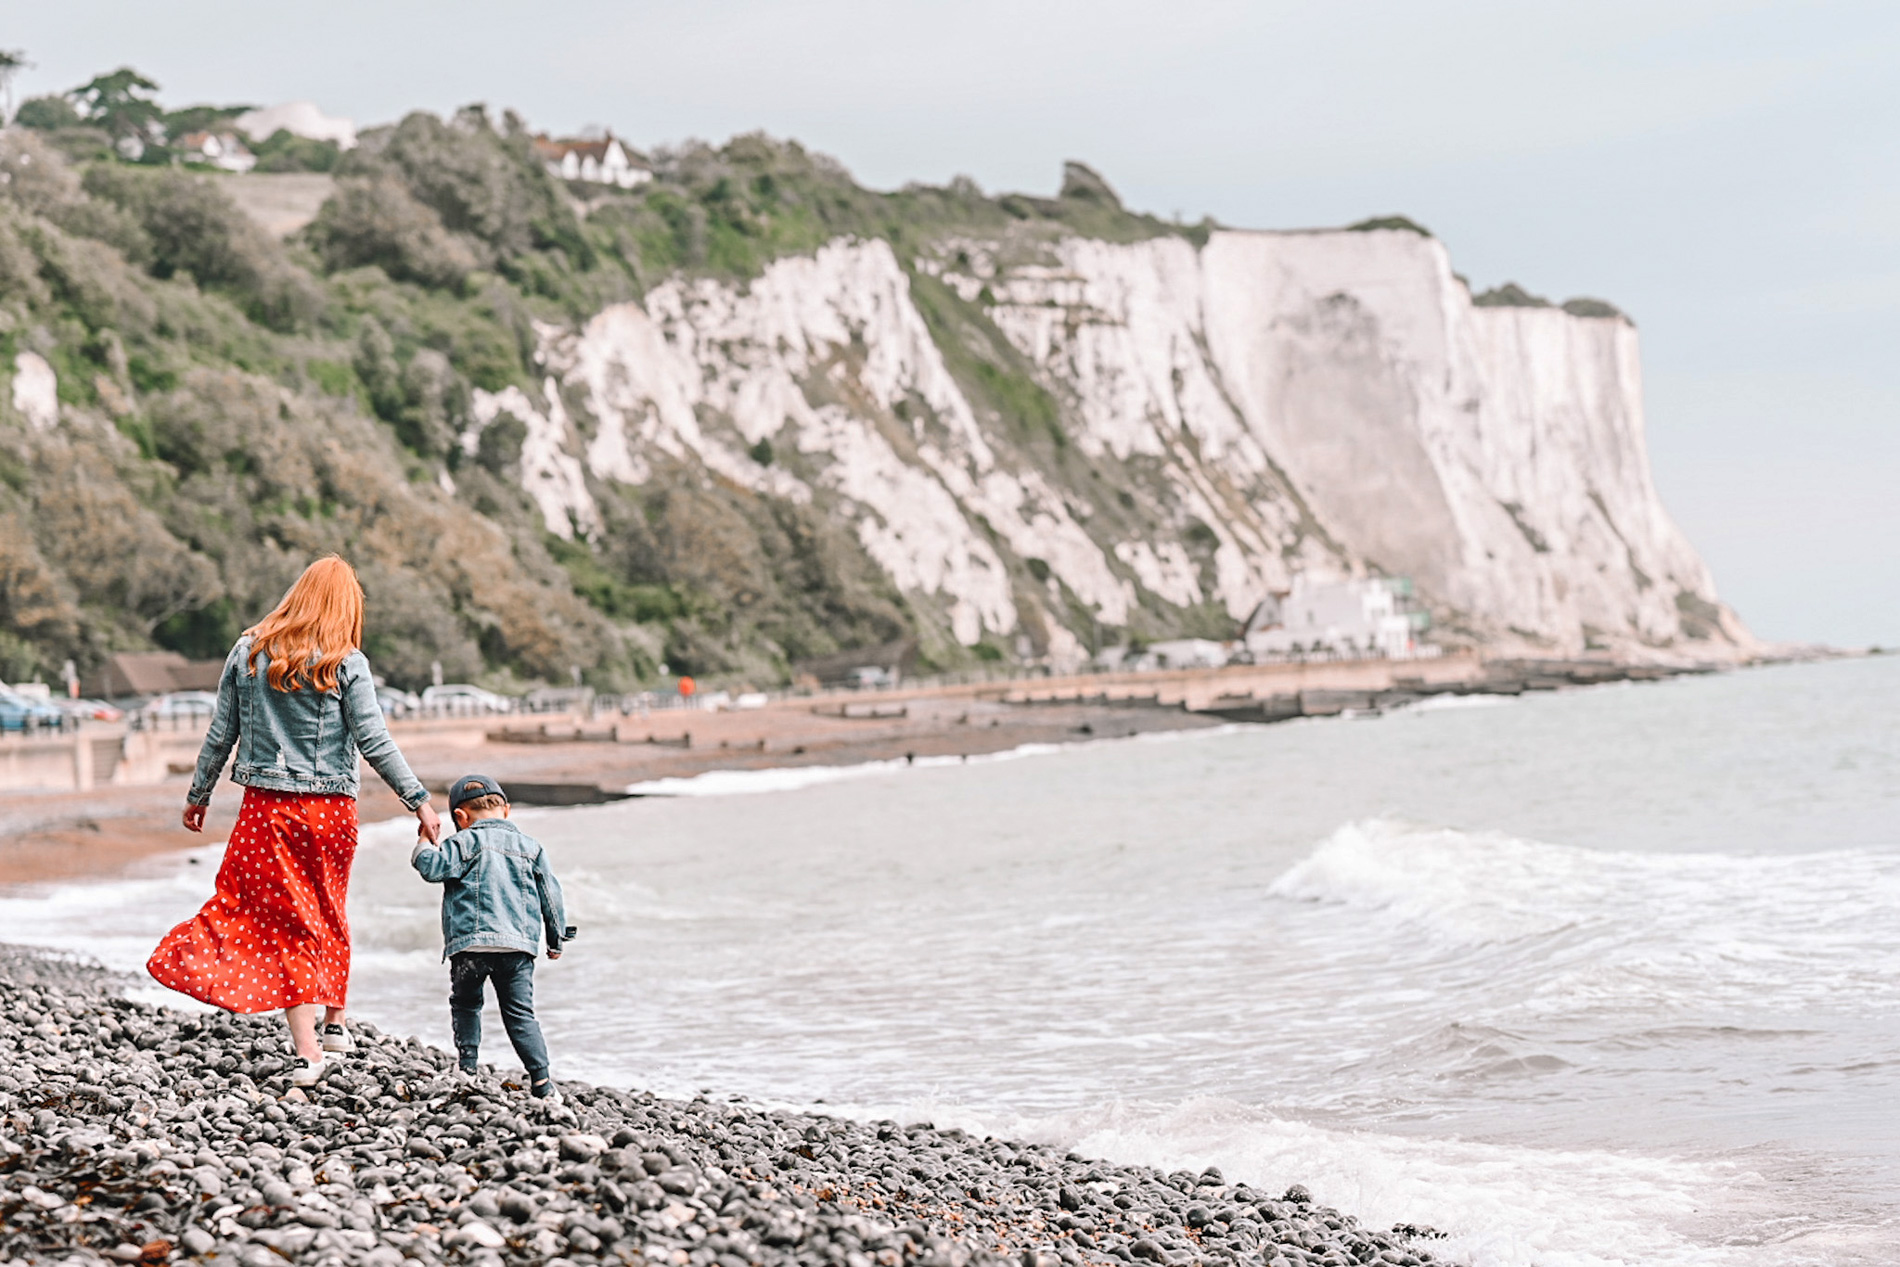 Amber and Max walking along a pebble beach at the white cliffs of Dover